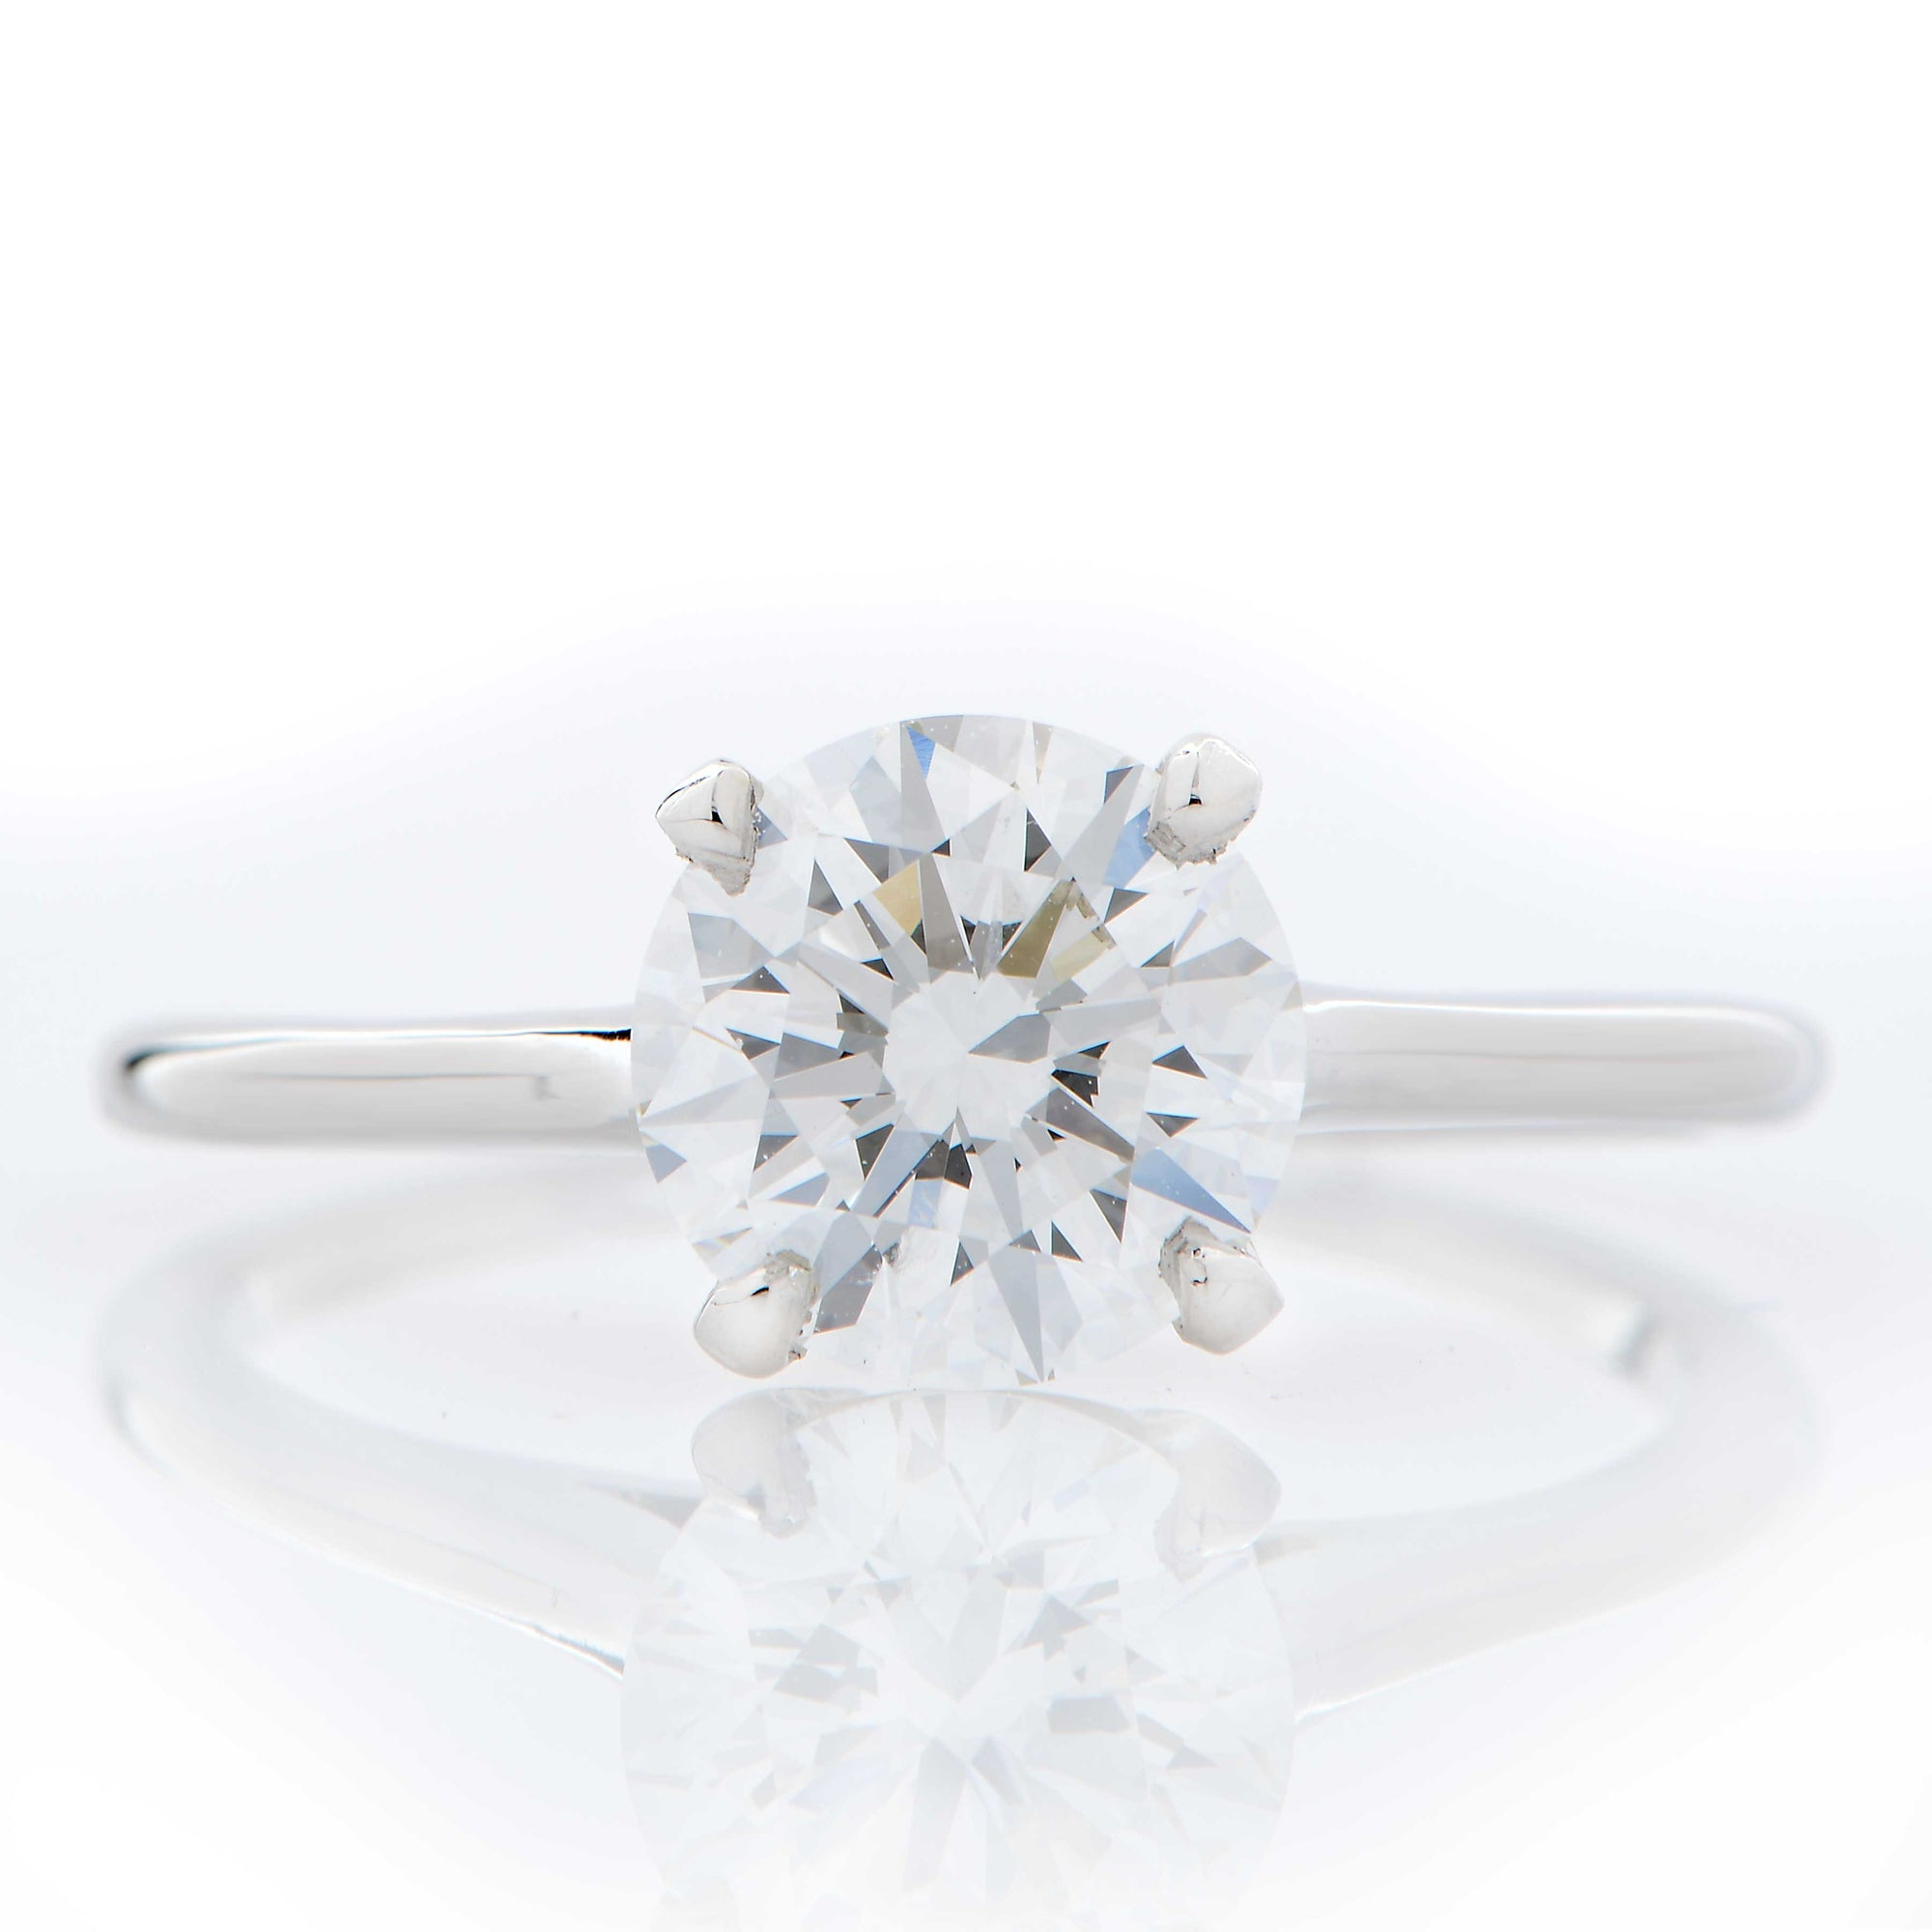 Choosing a diamond for your engagement ring. Shapes